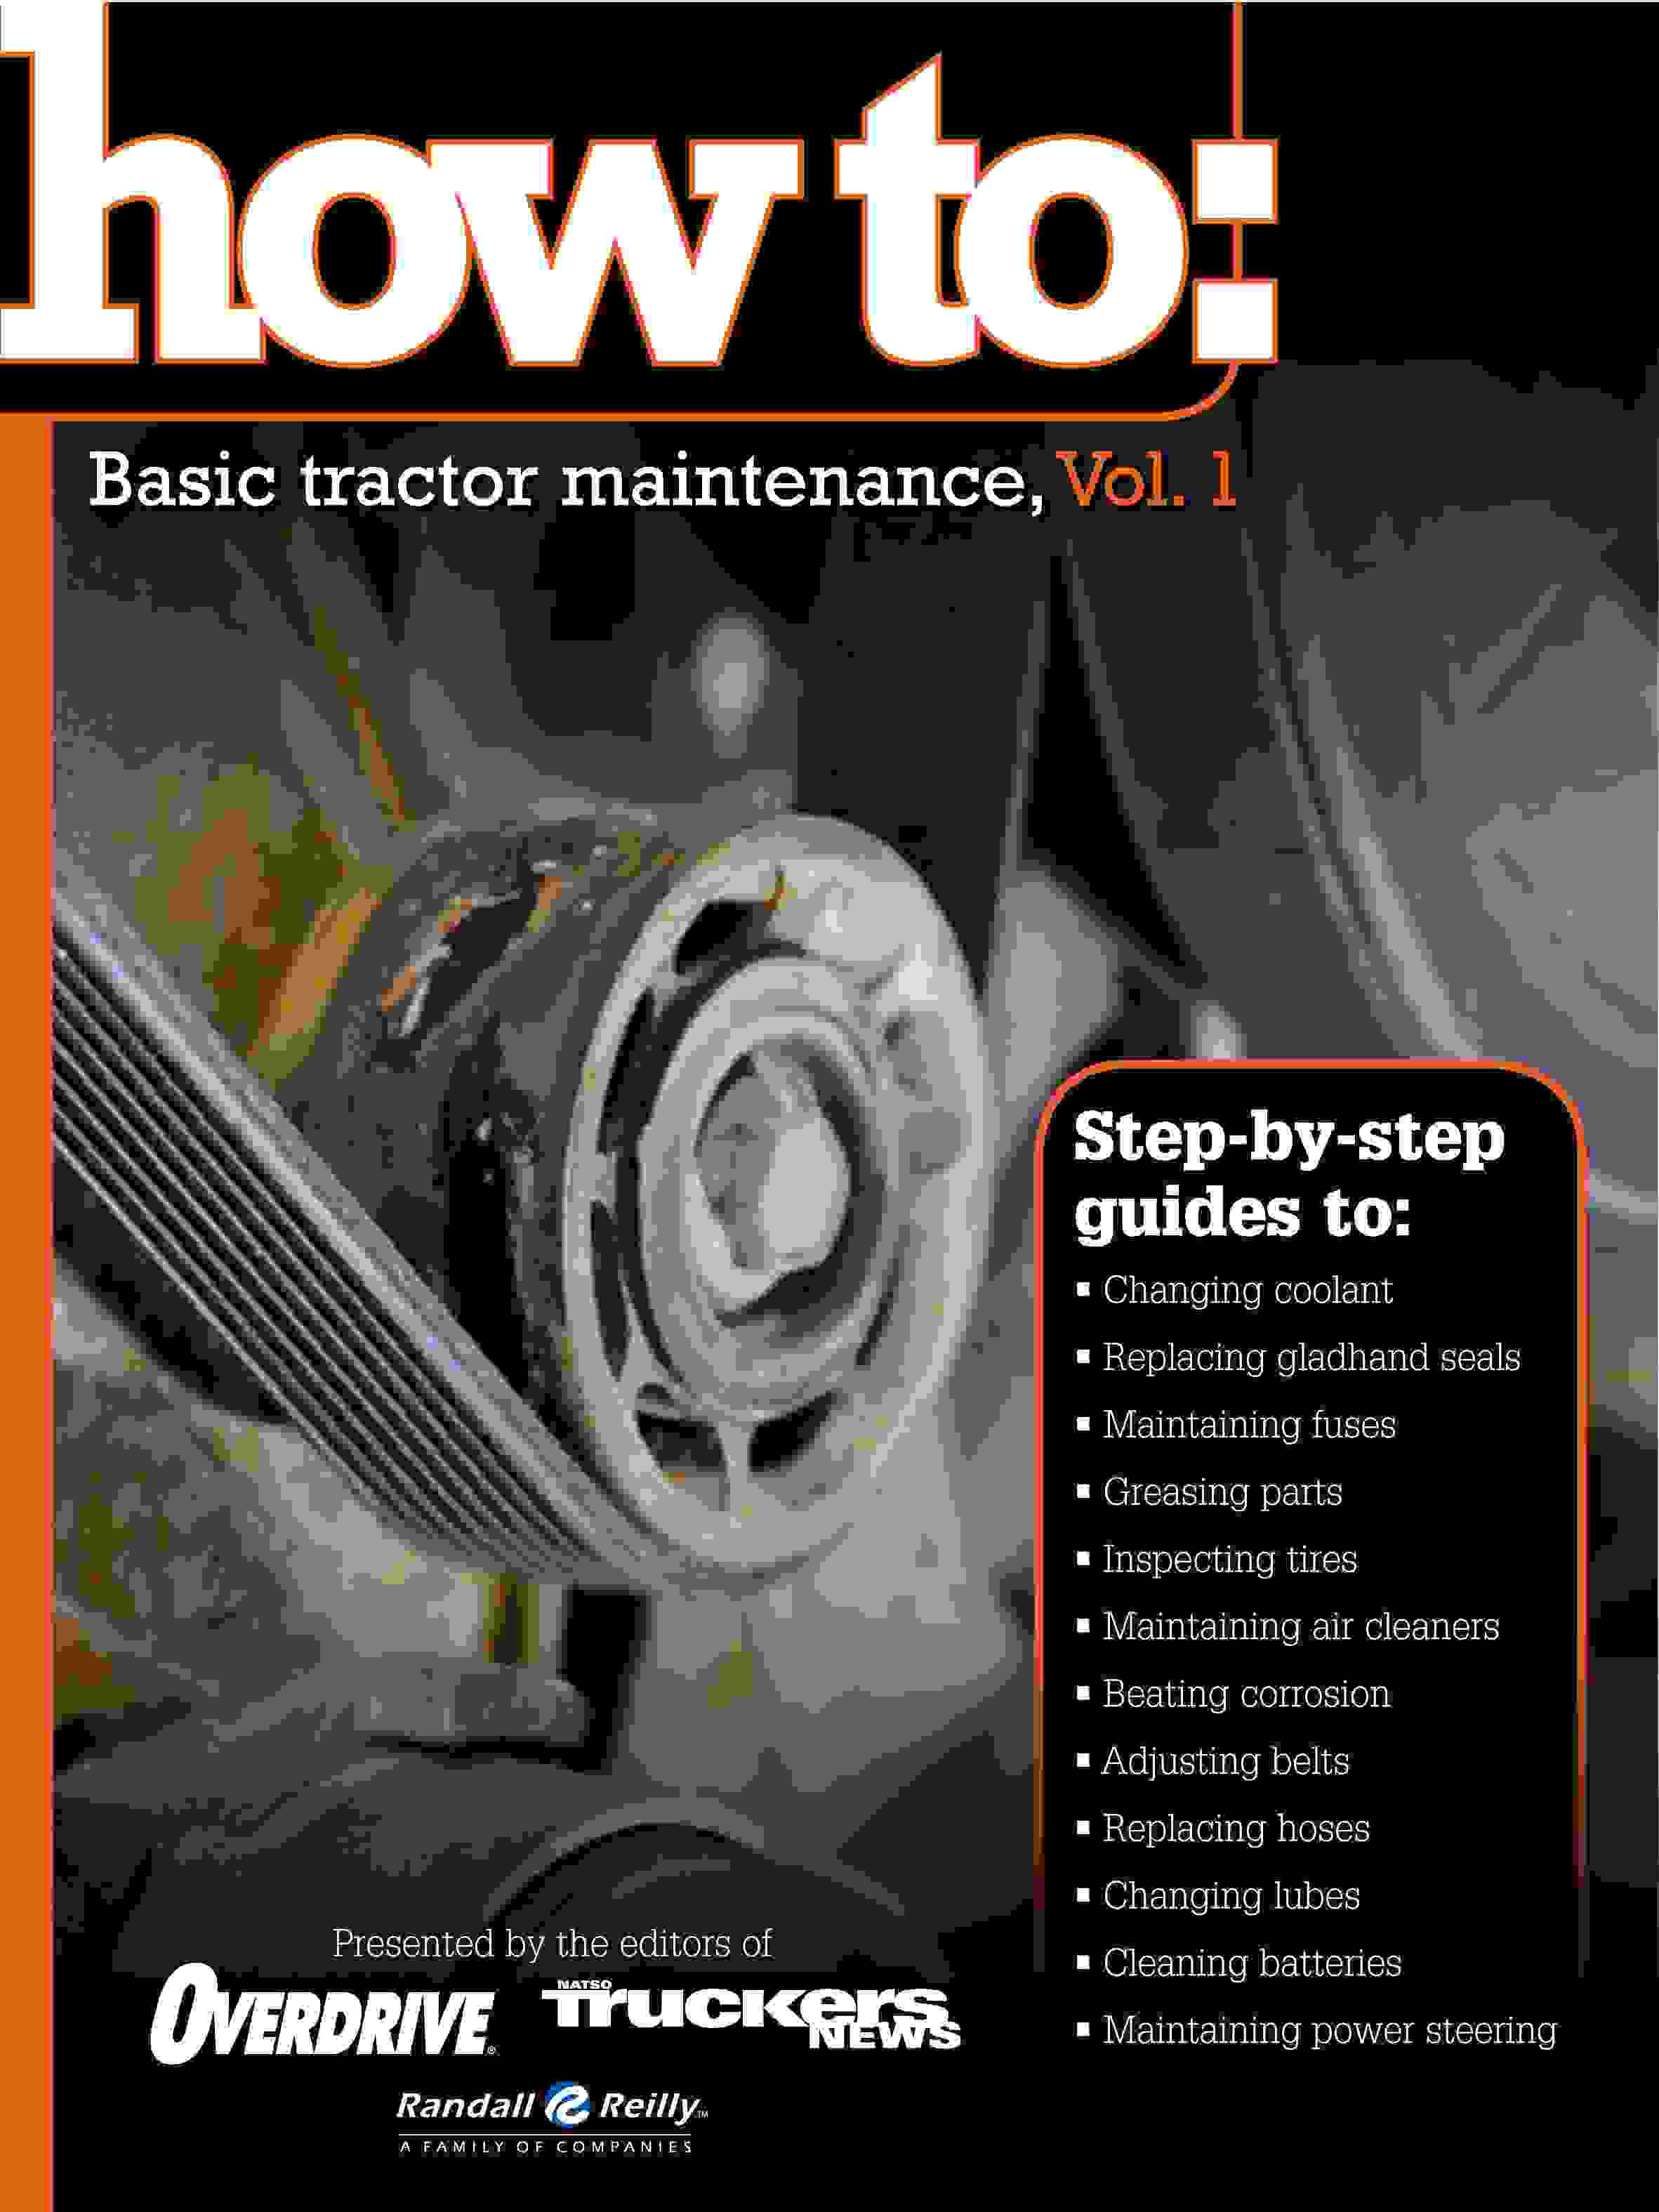 Do it yourself: Tractor maintenance